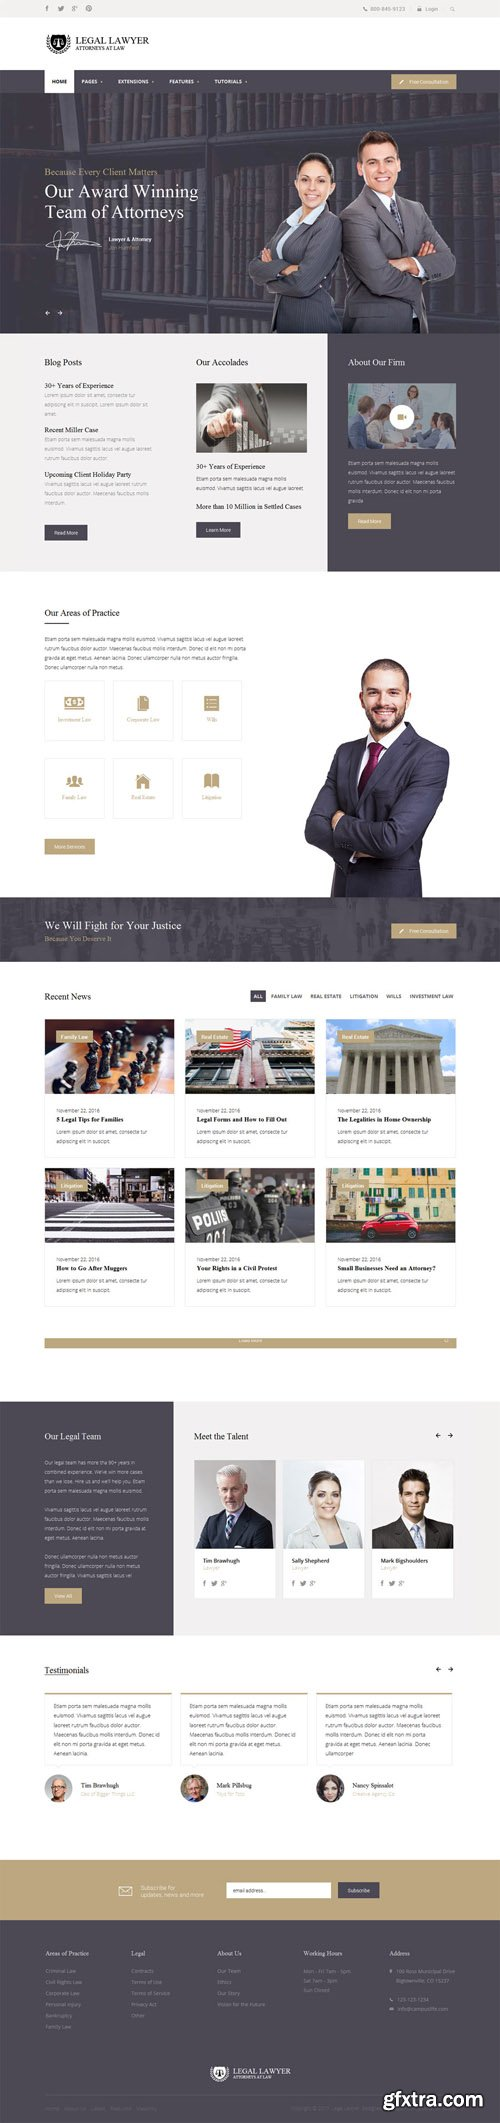 Shape5 - Legal Lawyer v1.0.3 - Joomla Template